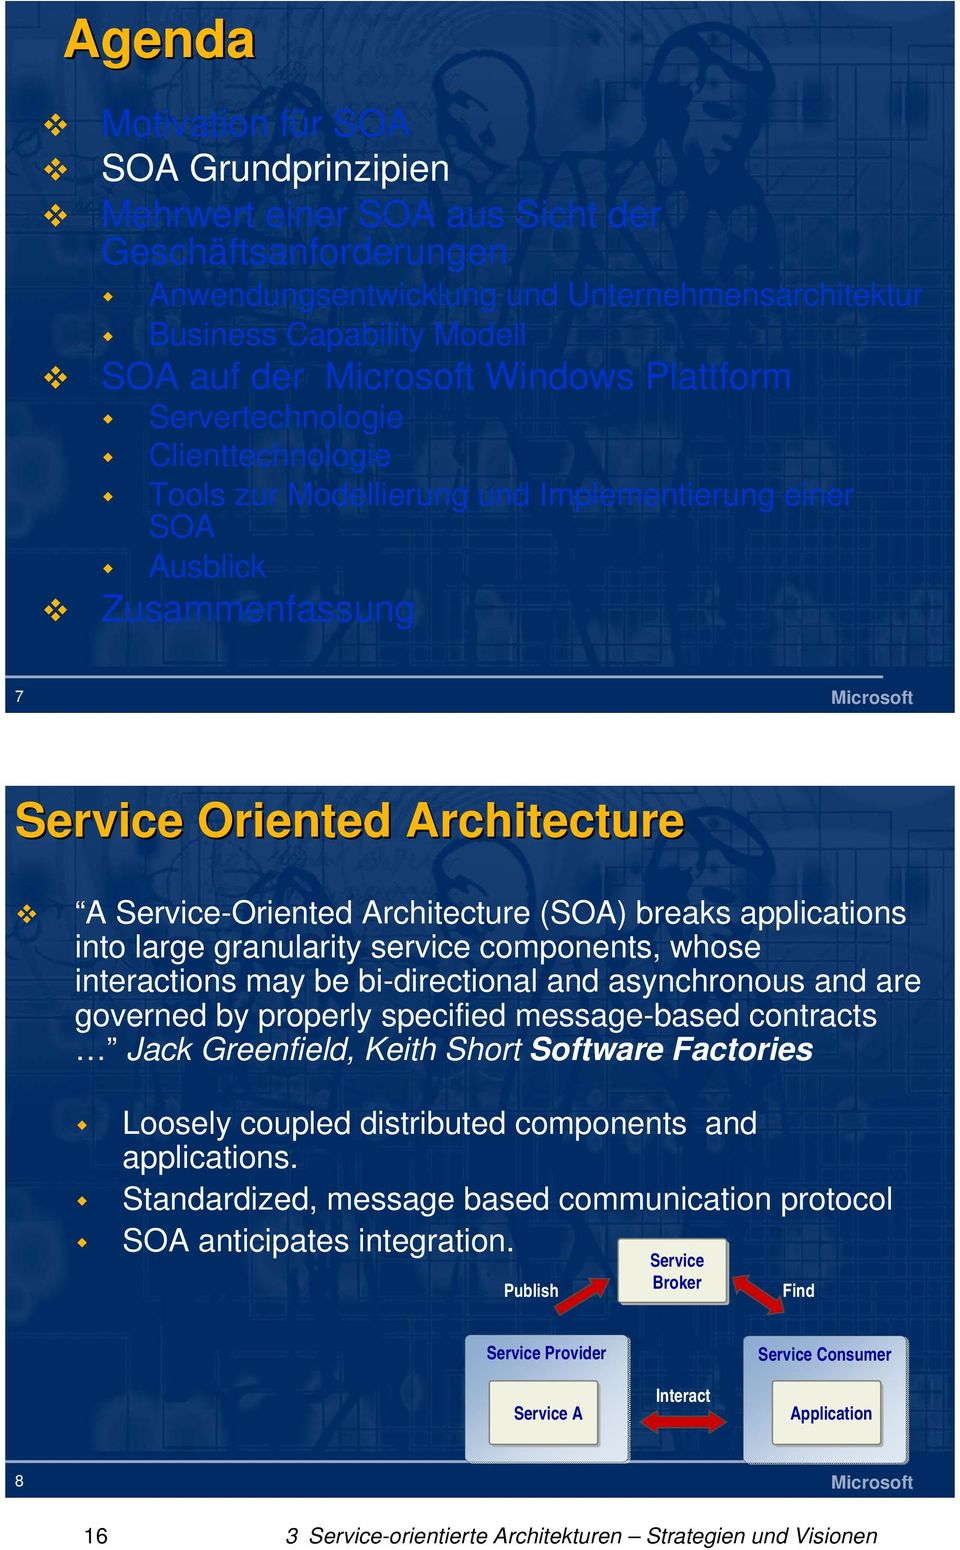 Service-Oriented Architecture (SOA) breaks applications into large granularity service components, whose interactions may be bi-directional and asynchronous and are governed by properly specified